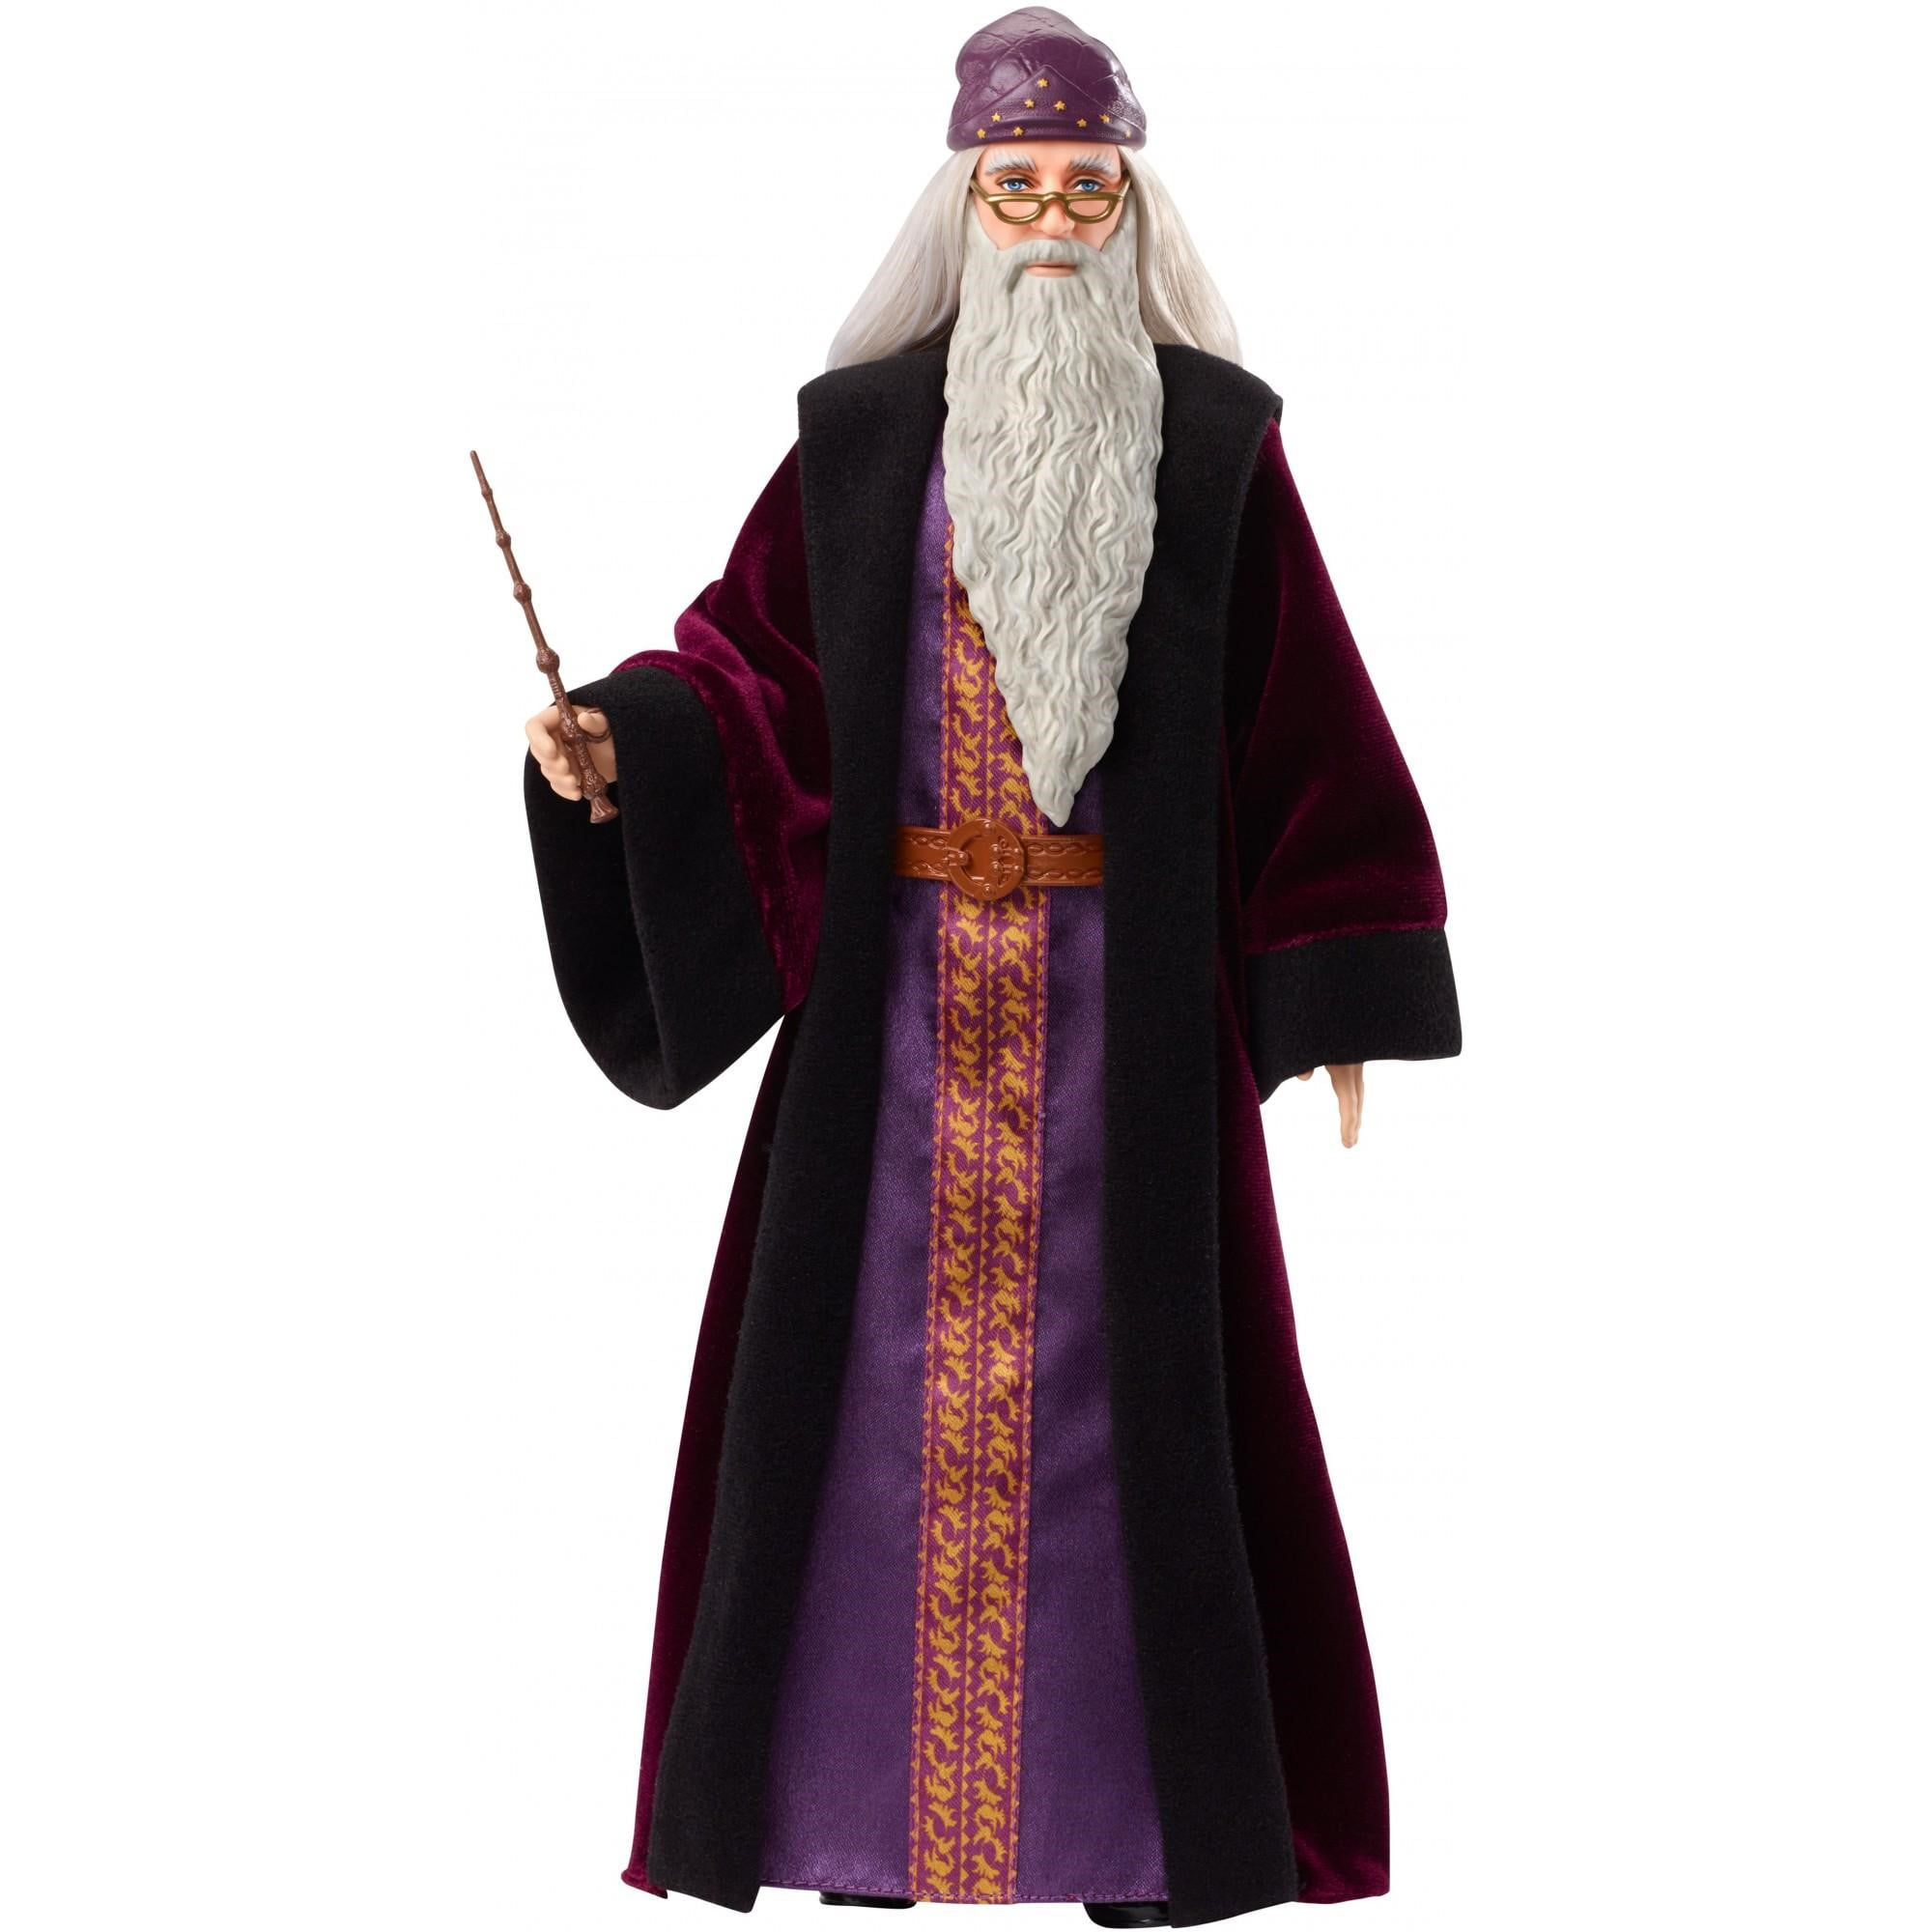 Harry Potter Albus Dumbledore Film-Inspired Collector Doll by Harry Potter